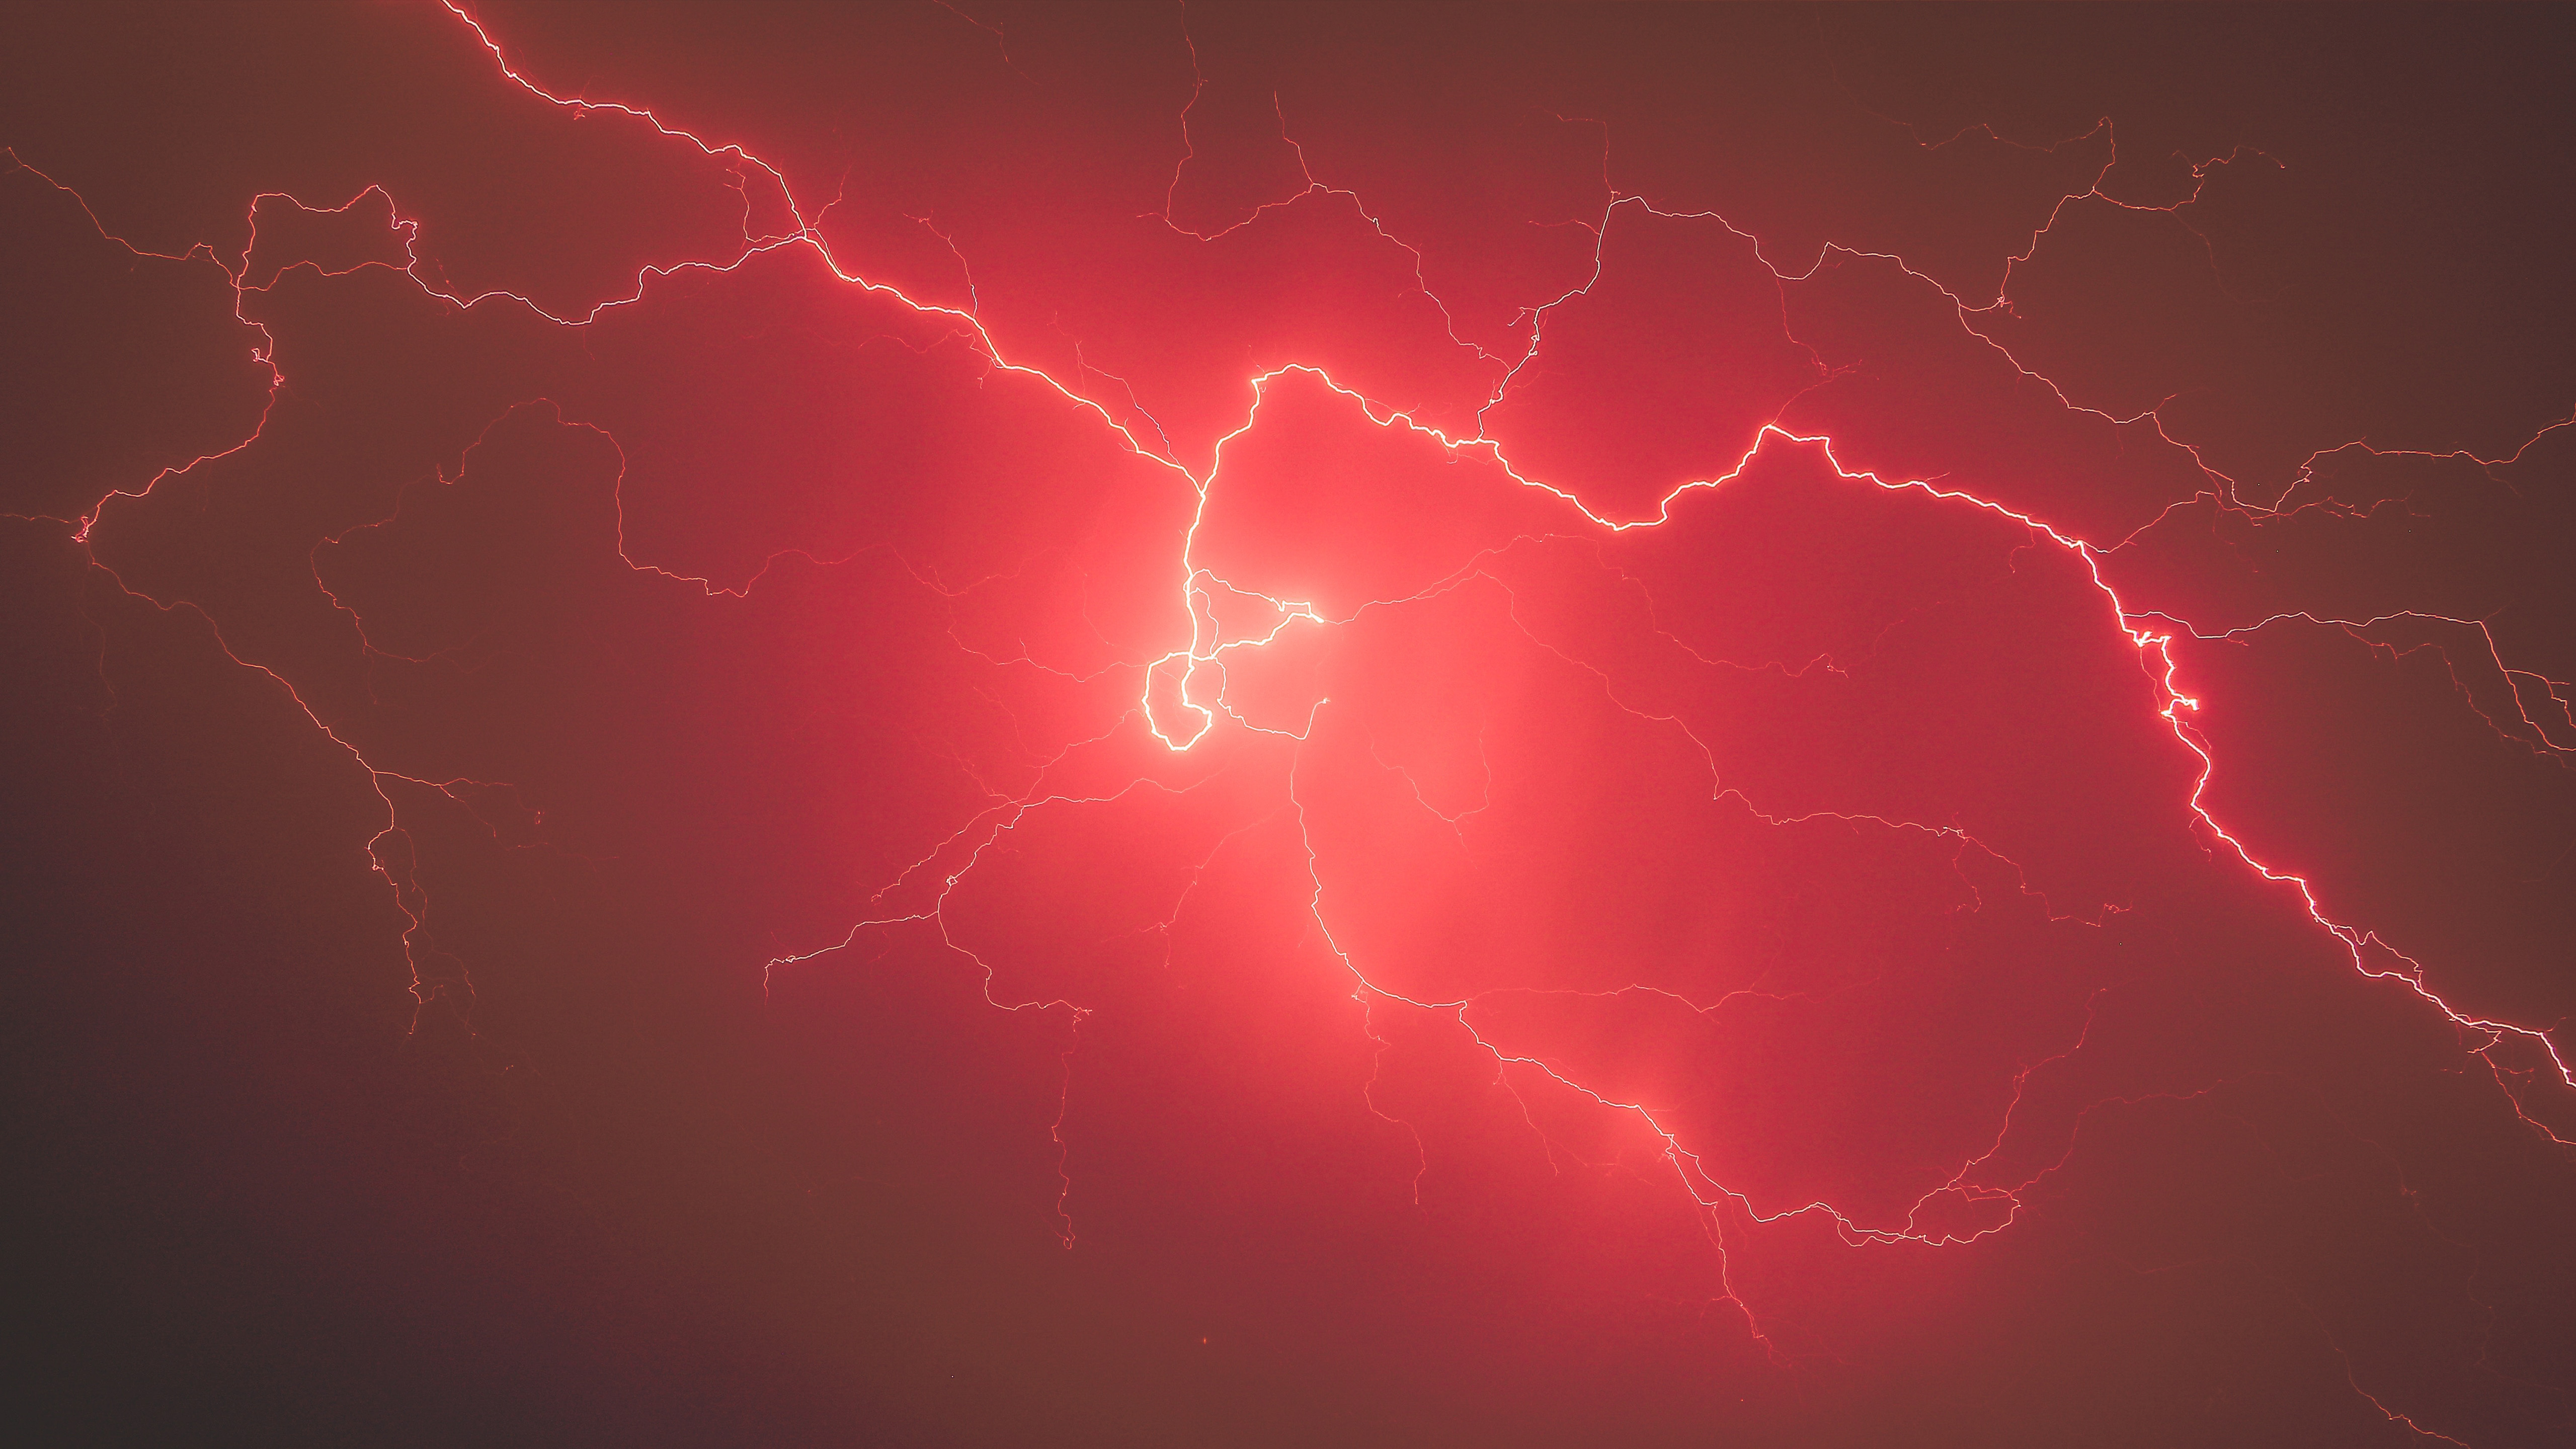 Lightning storm red sky 5k hd nature 4k wallpapers images backgrounds photos and pictures - Lightning wallpaper 4k ...